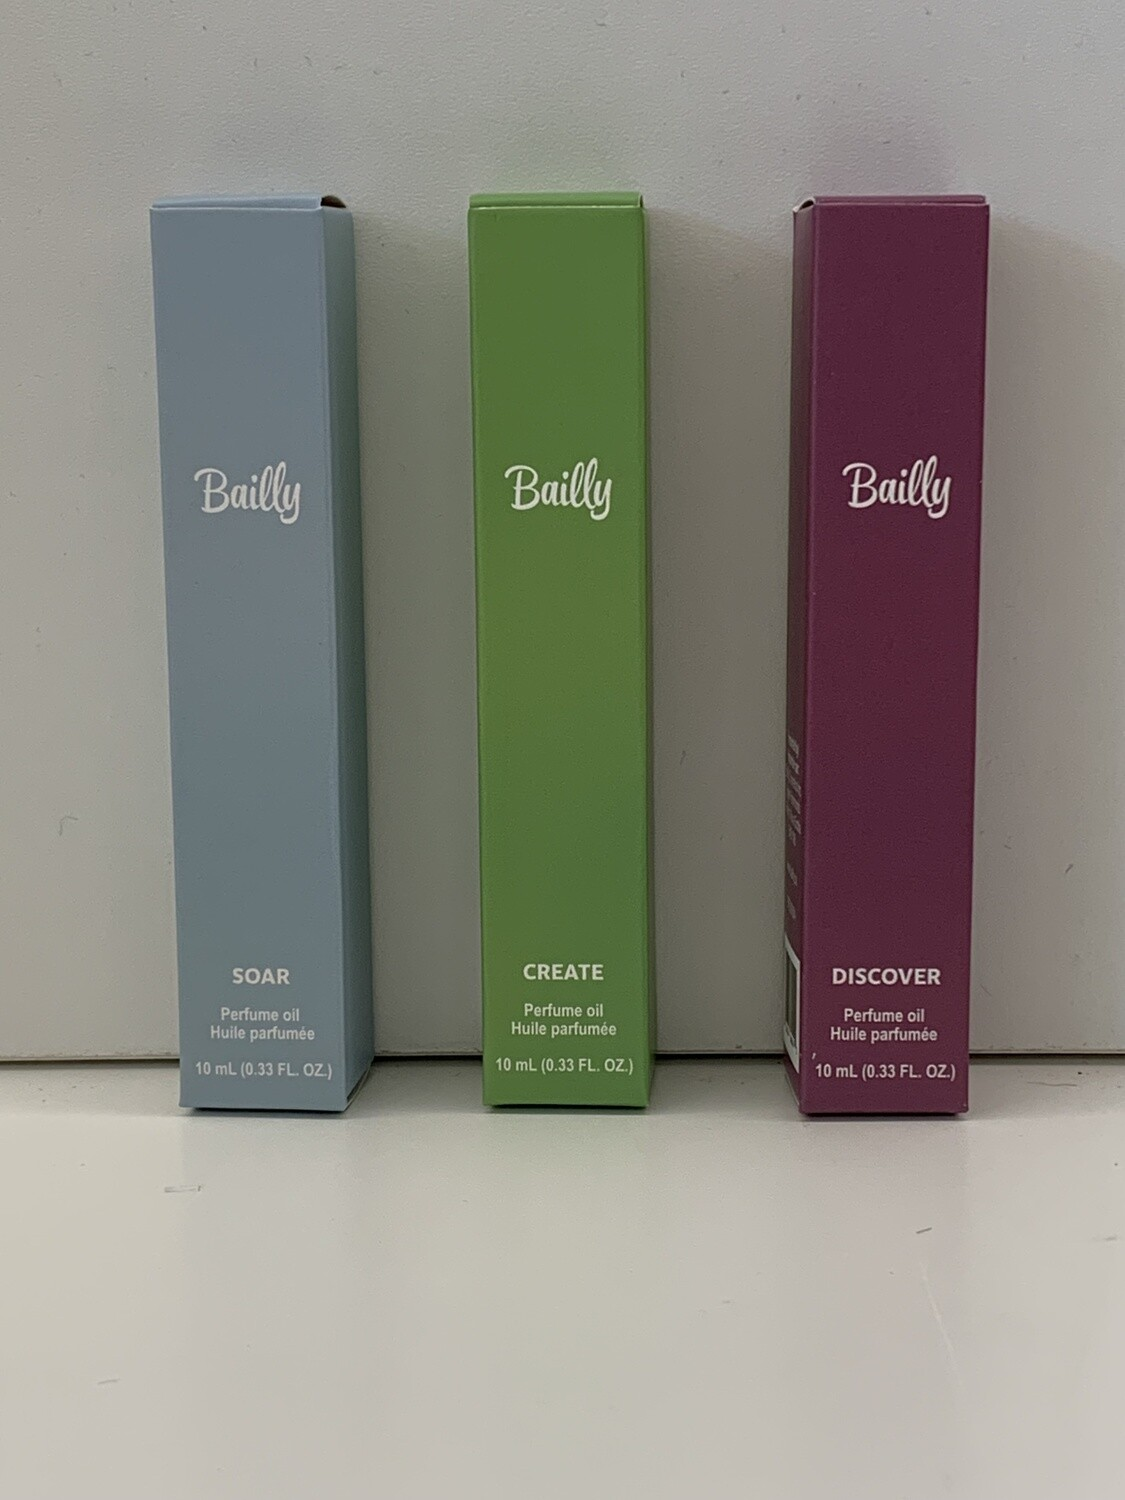 Bailly Limitless Roll-on Perfume Oil 10mL